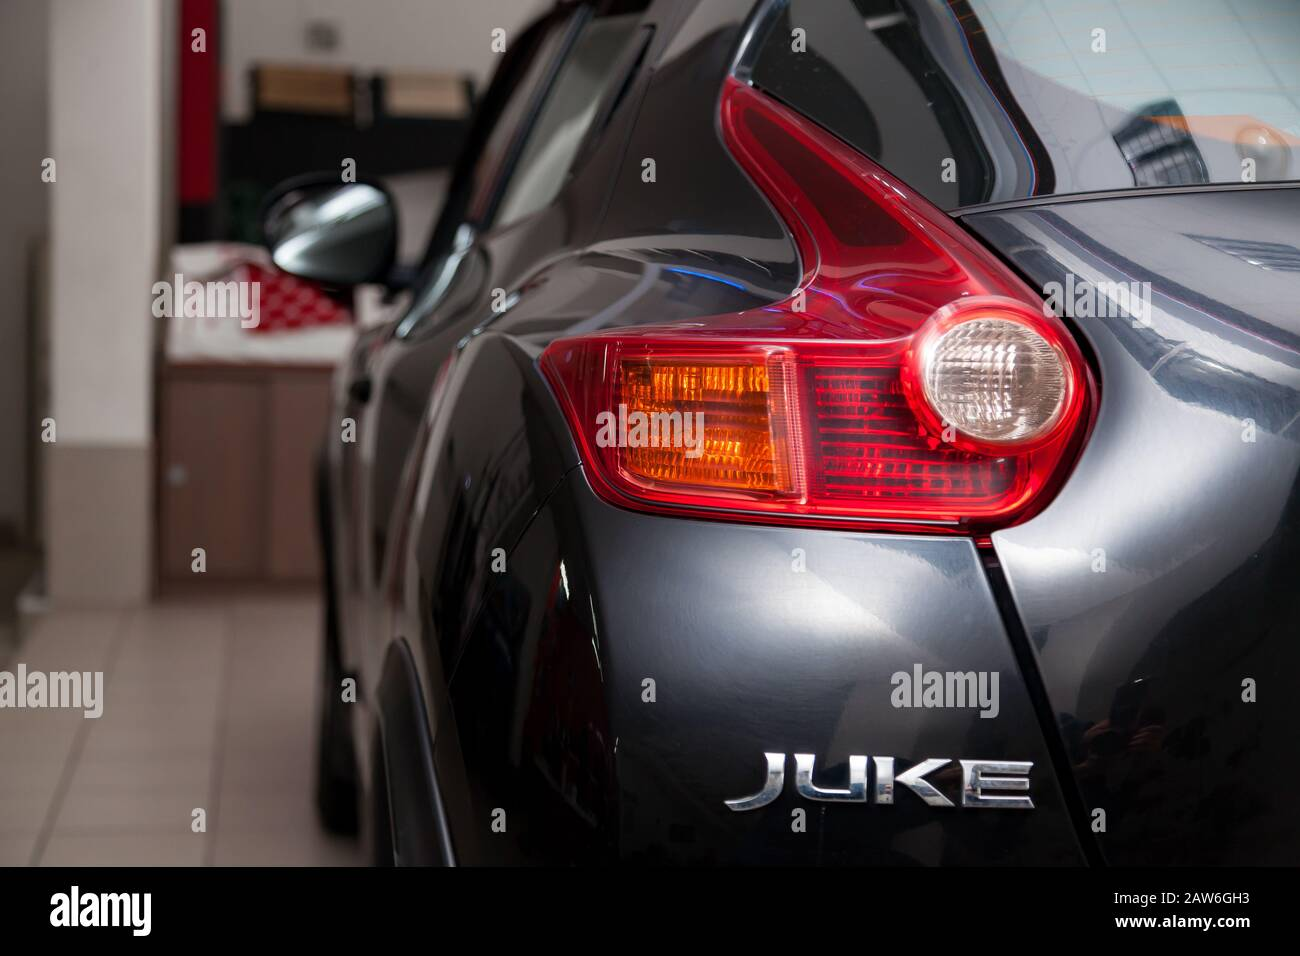 Novosibirsk Russia 02 05 2020 Black Used Nissan Juke With Front View On The Car Snow Parking After Preparing For Sale Stock Photo Alamy